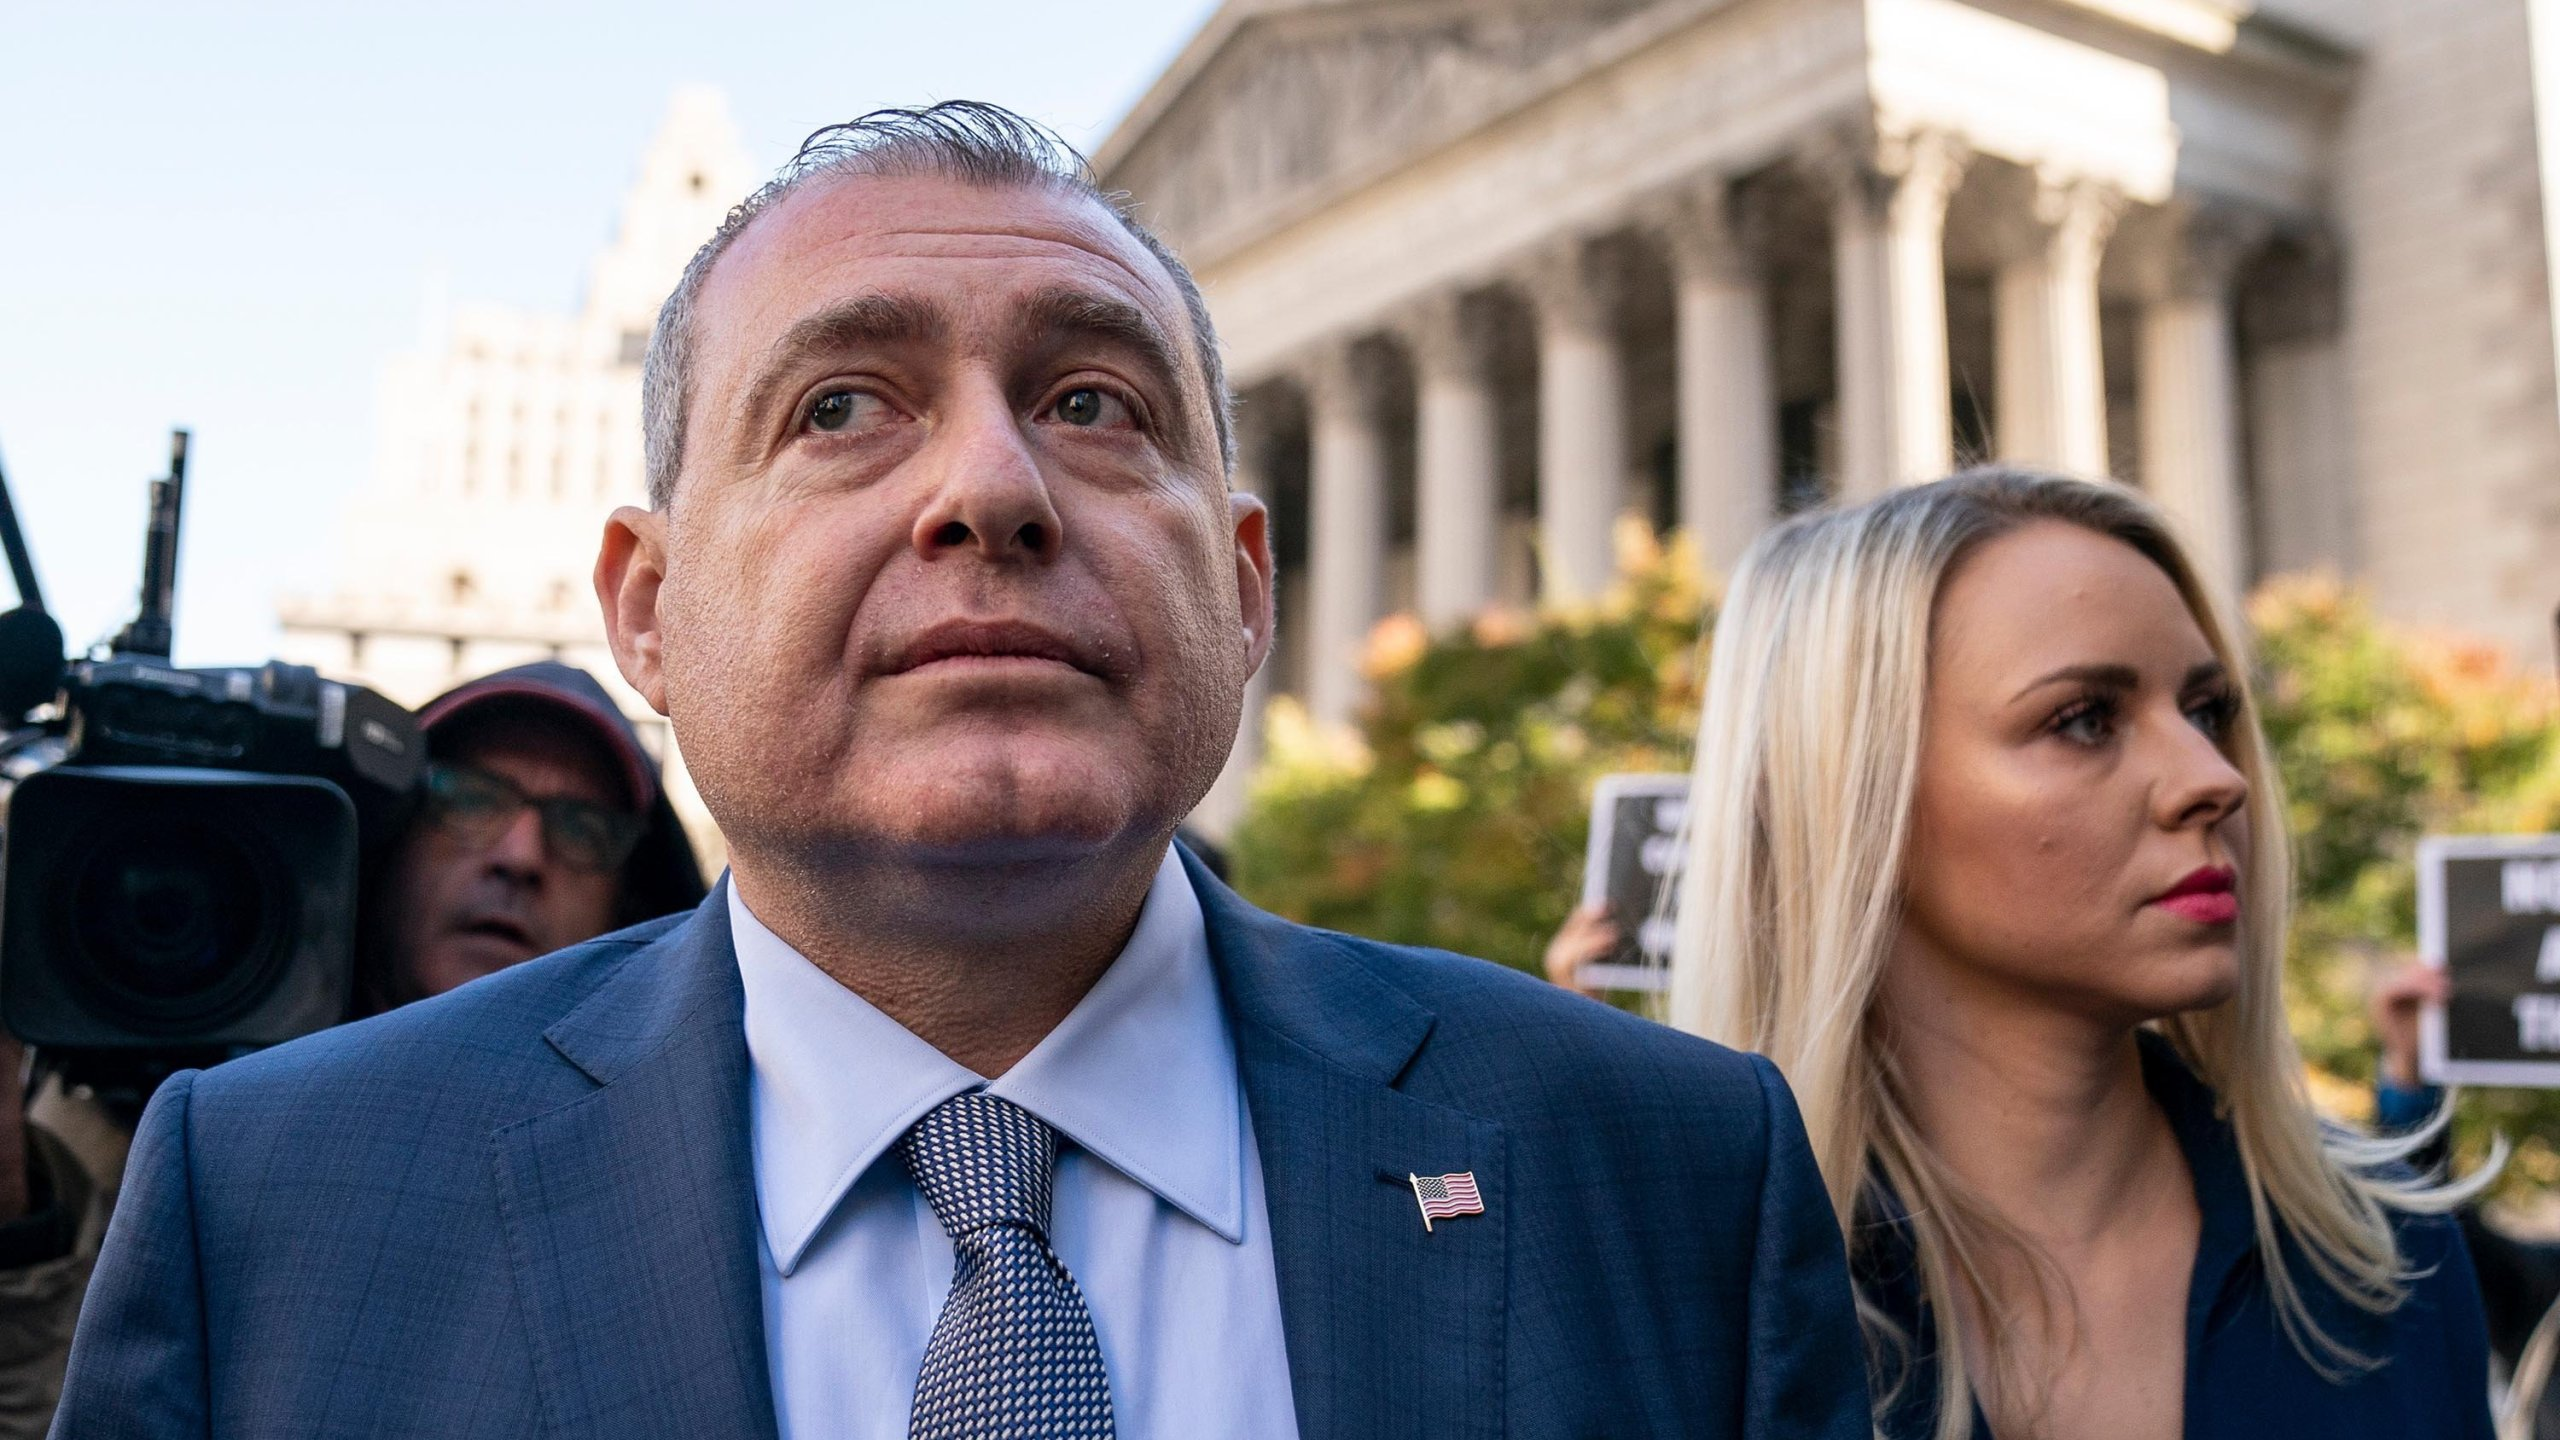 An associate of Rudy Giuliani -- Lev Parnas -- has initiated talks with impeachment investigators through his attorney. (Credit: Drew Angerer/Getty Image)